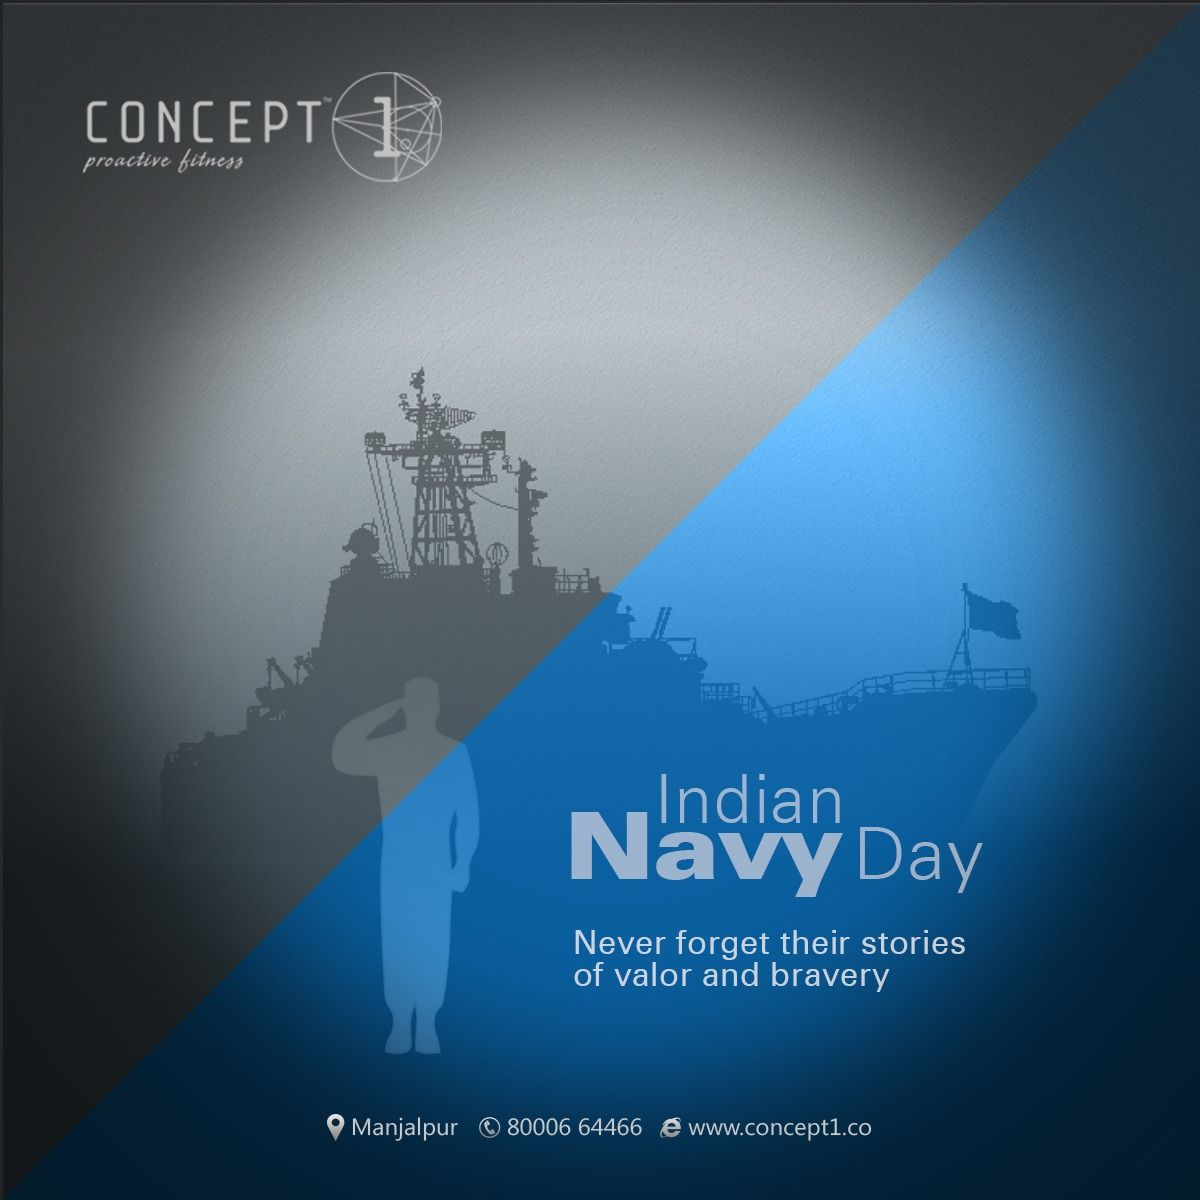 Never Forget Their Stories Of Valor And Bravery Navy Day Of India Concept1 Proactive Fitness Concept1 Gym Hammer Navy Day Indian Navy Day Navratri Wishes